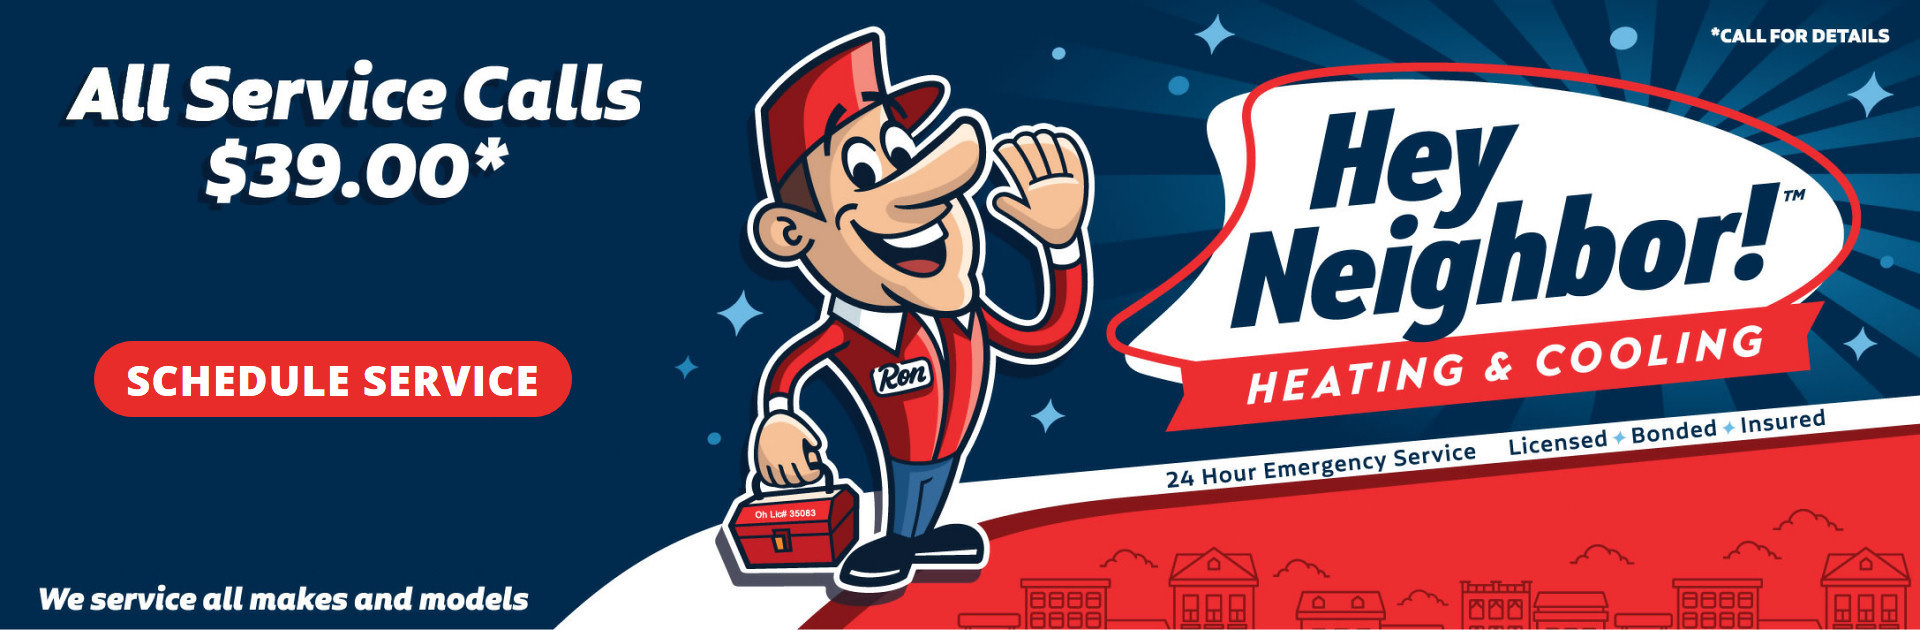 Call Hey Neighbor Heating & Cooling for expert HVAC service and installation in Northeast Ohio!